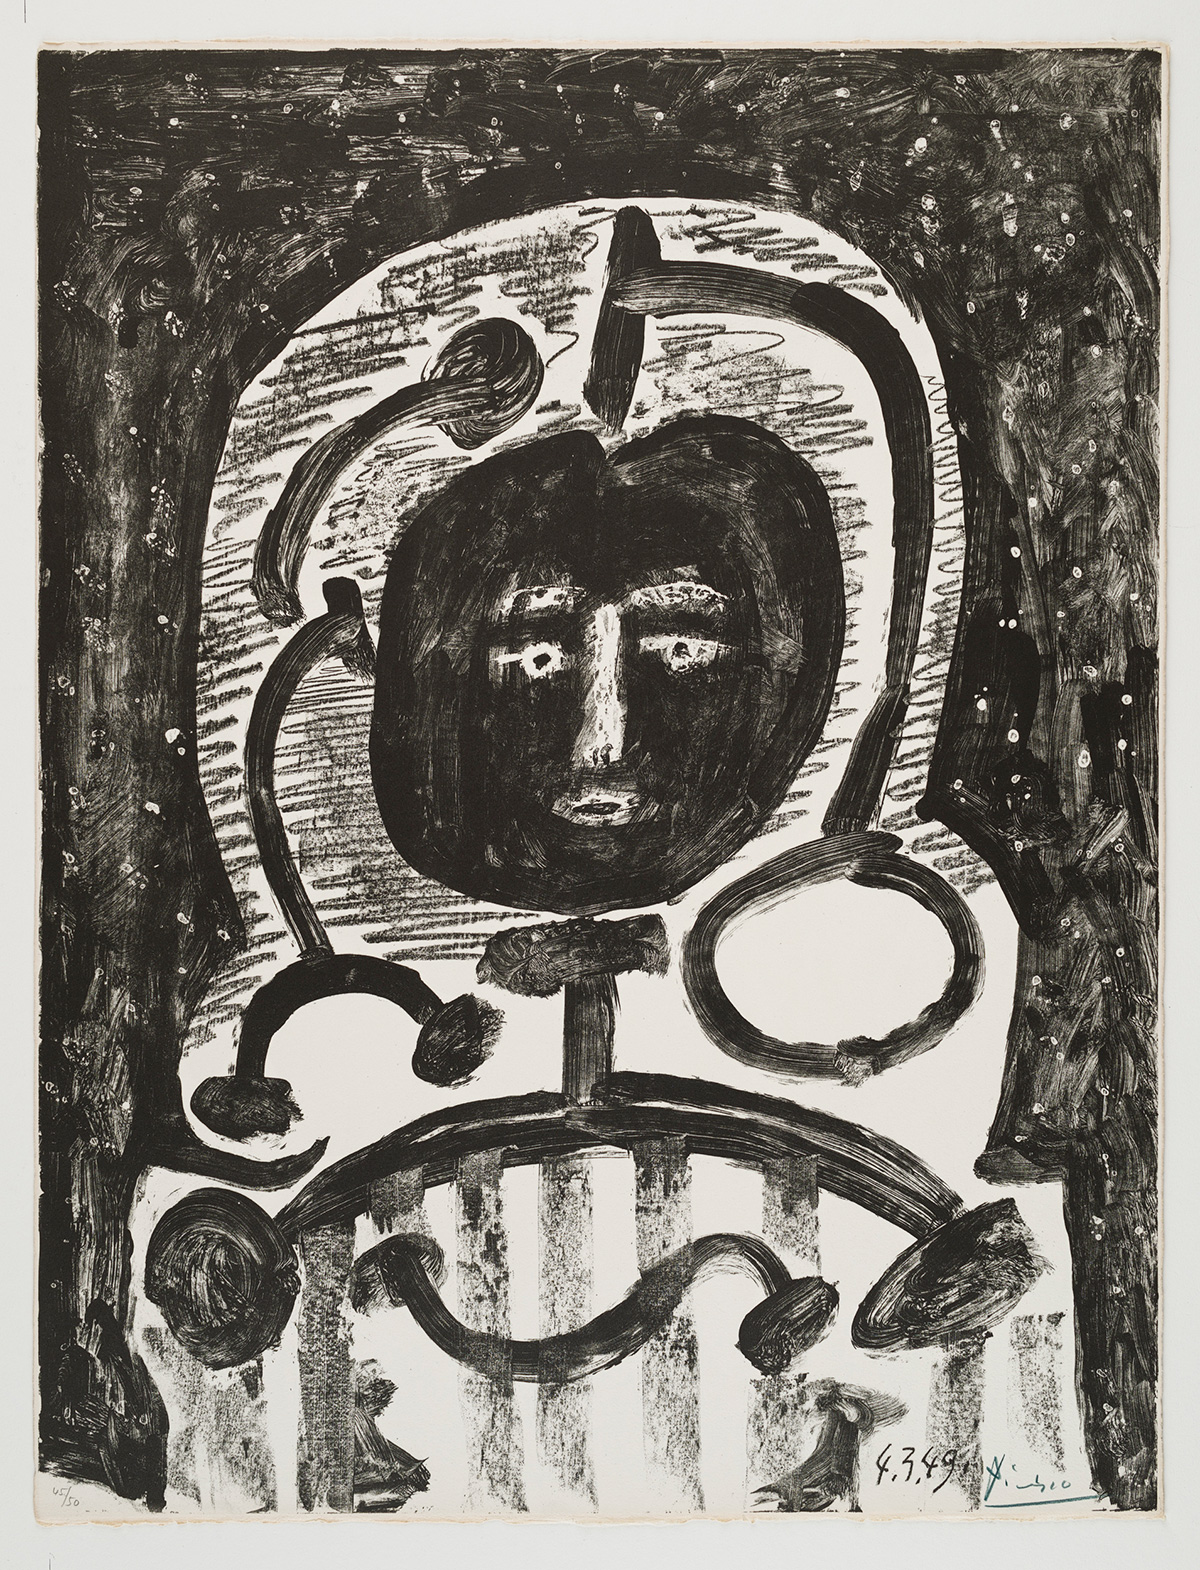 british museum buys picasso prints